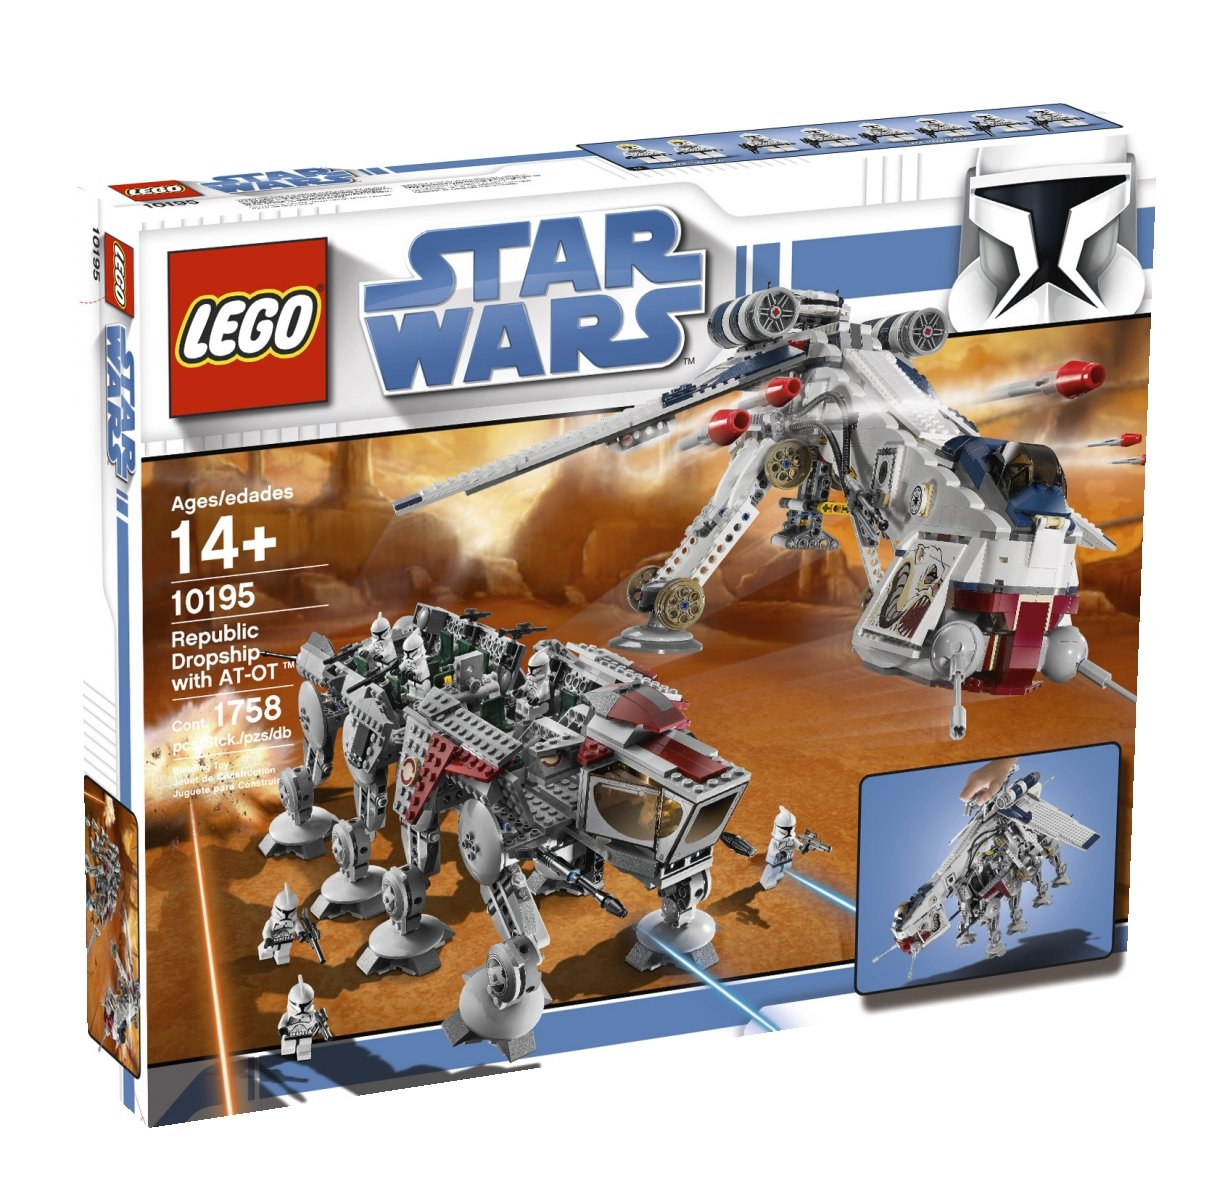 amazoncom lego star wars republic dropship with at ot walker 10195 discontinued by manufacturer toys games - Lego Star Wars Vaisseau Clone